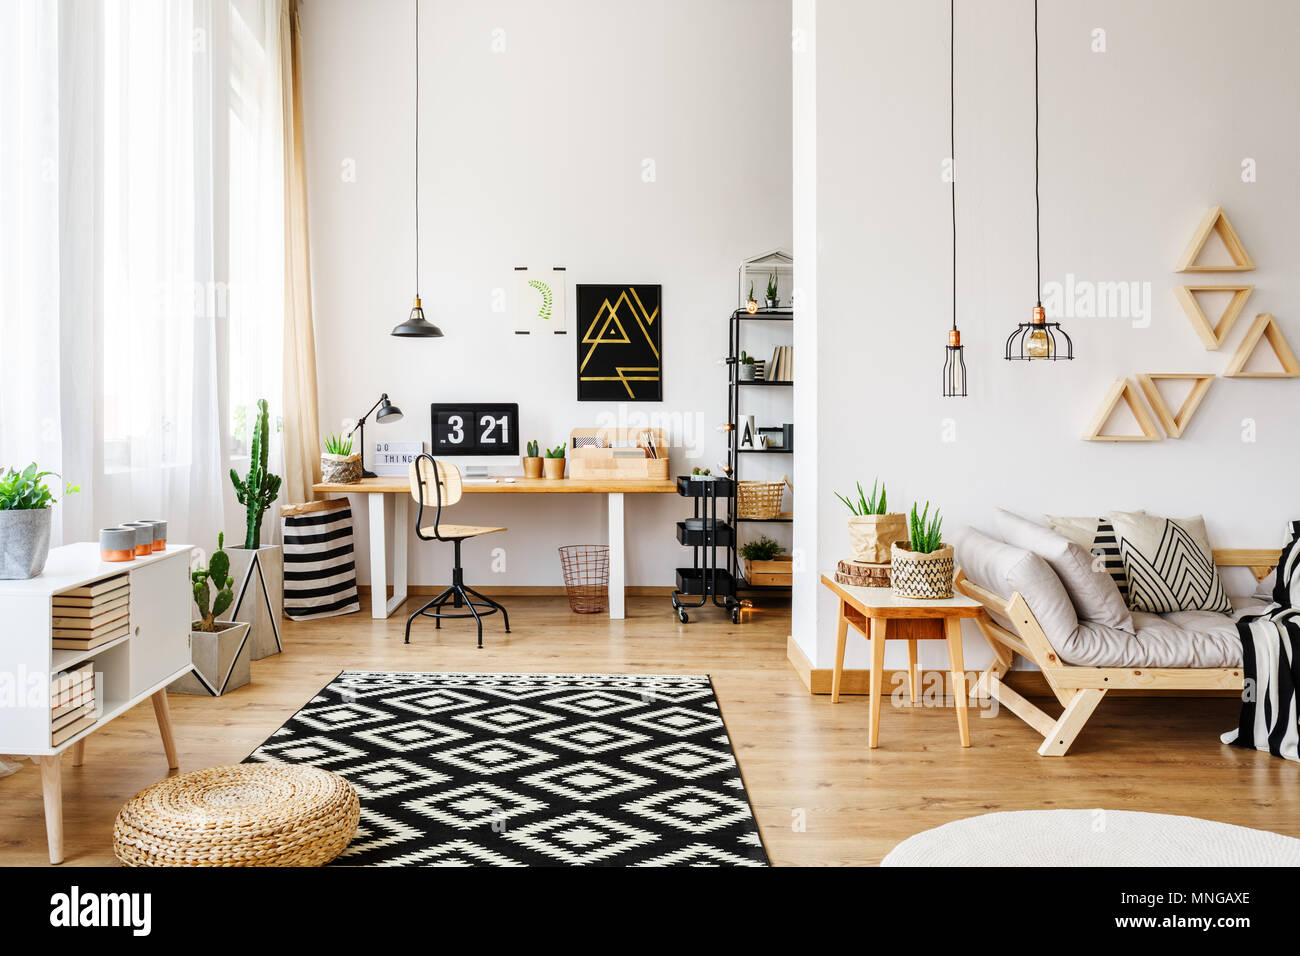 Merveilleux Modern White Craft Room In Open Apartment With Creative Design, Triangle  Shelves, Industrial Pendant Lamps, Wooden Furniture, Patterned Rug, Hardwood